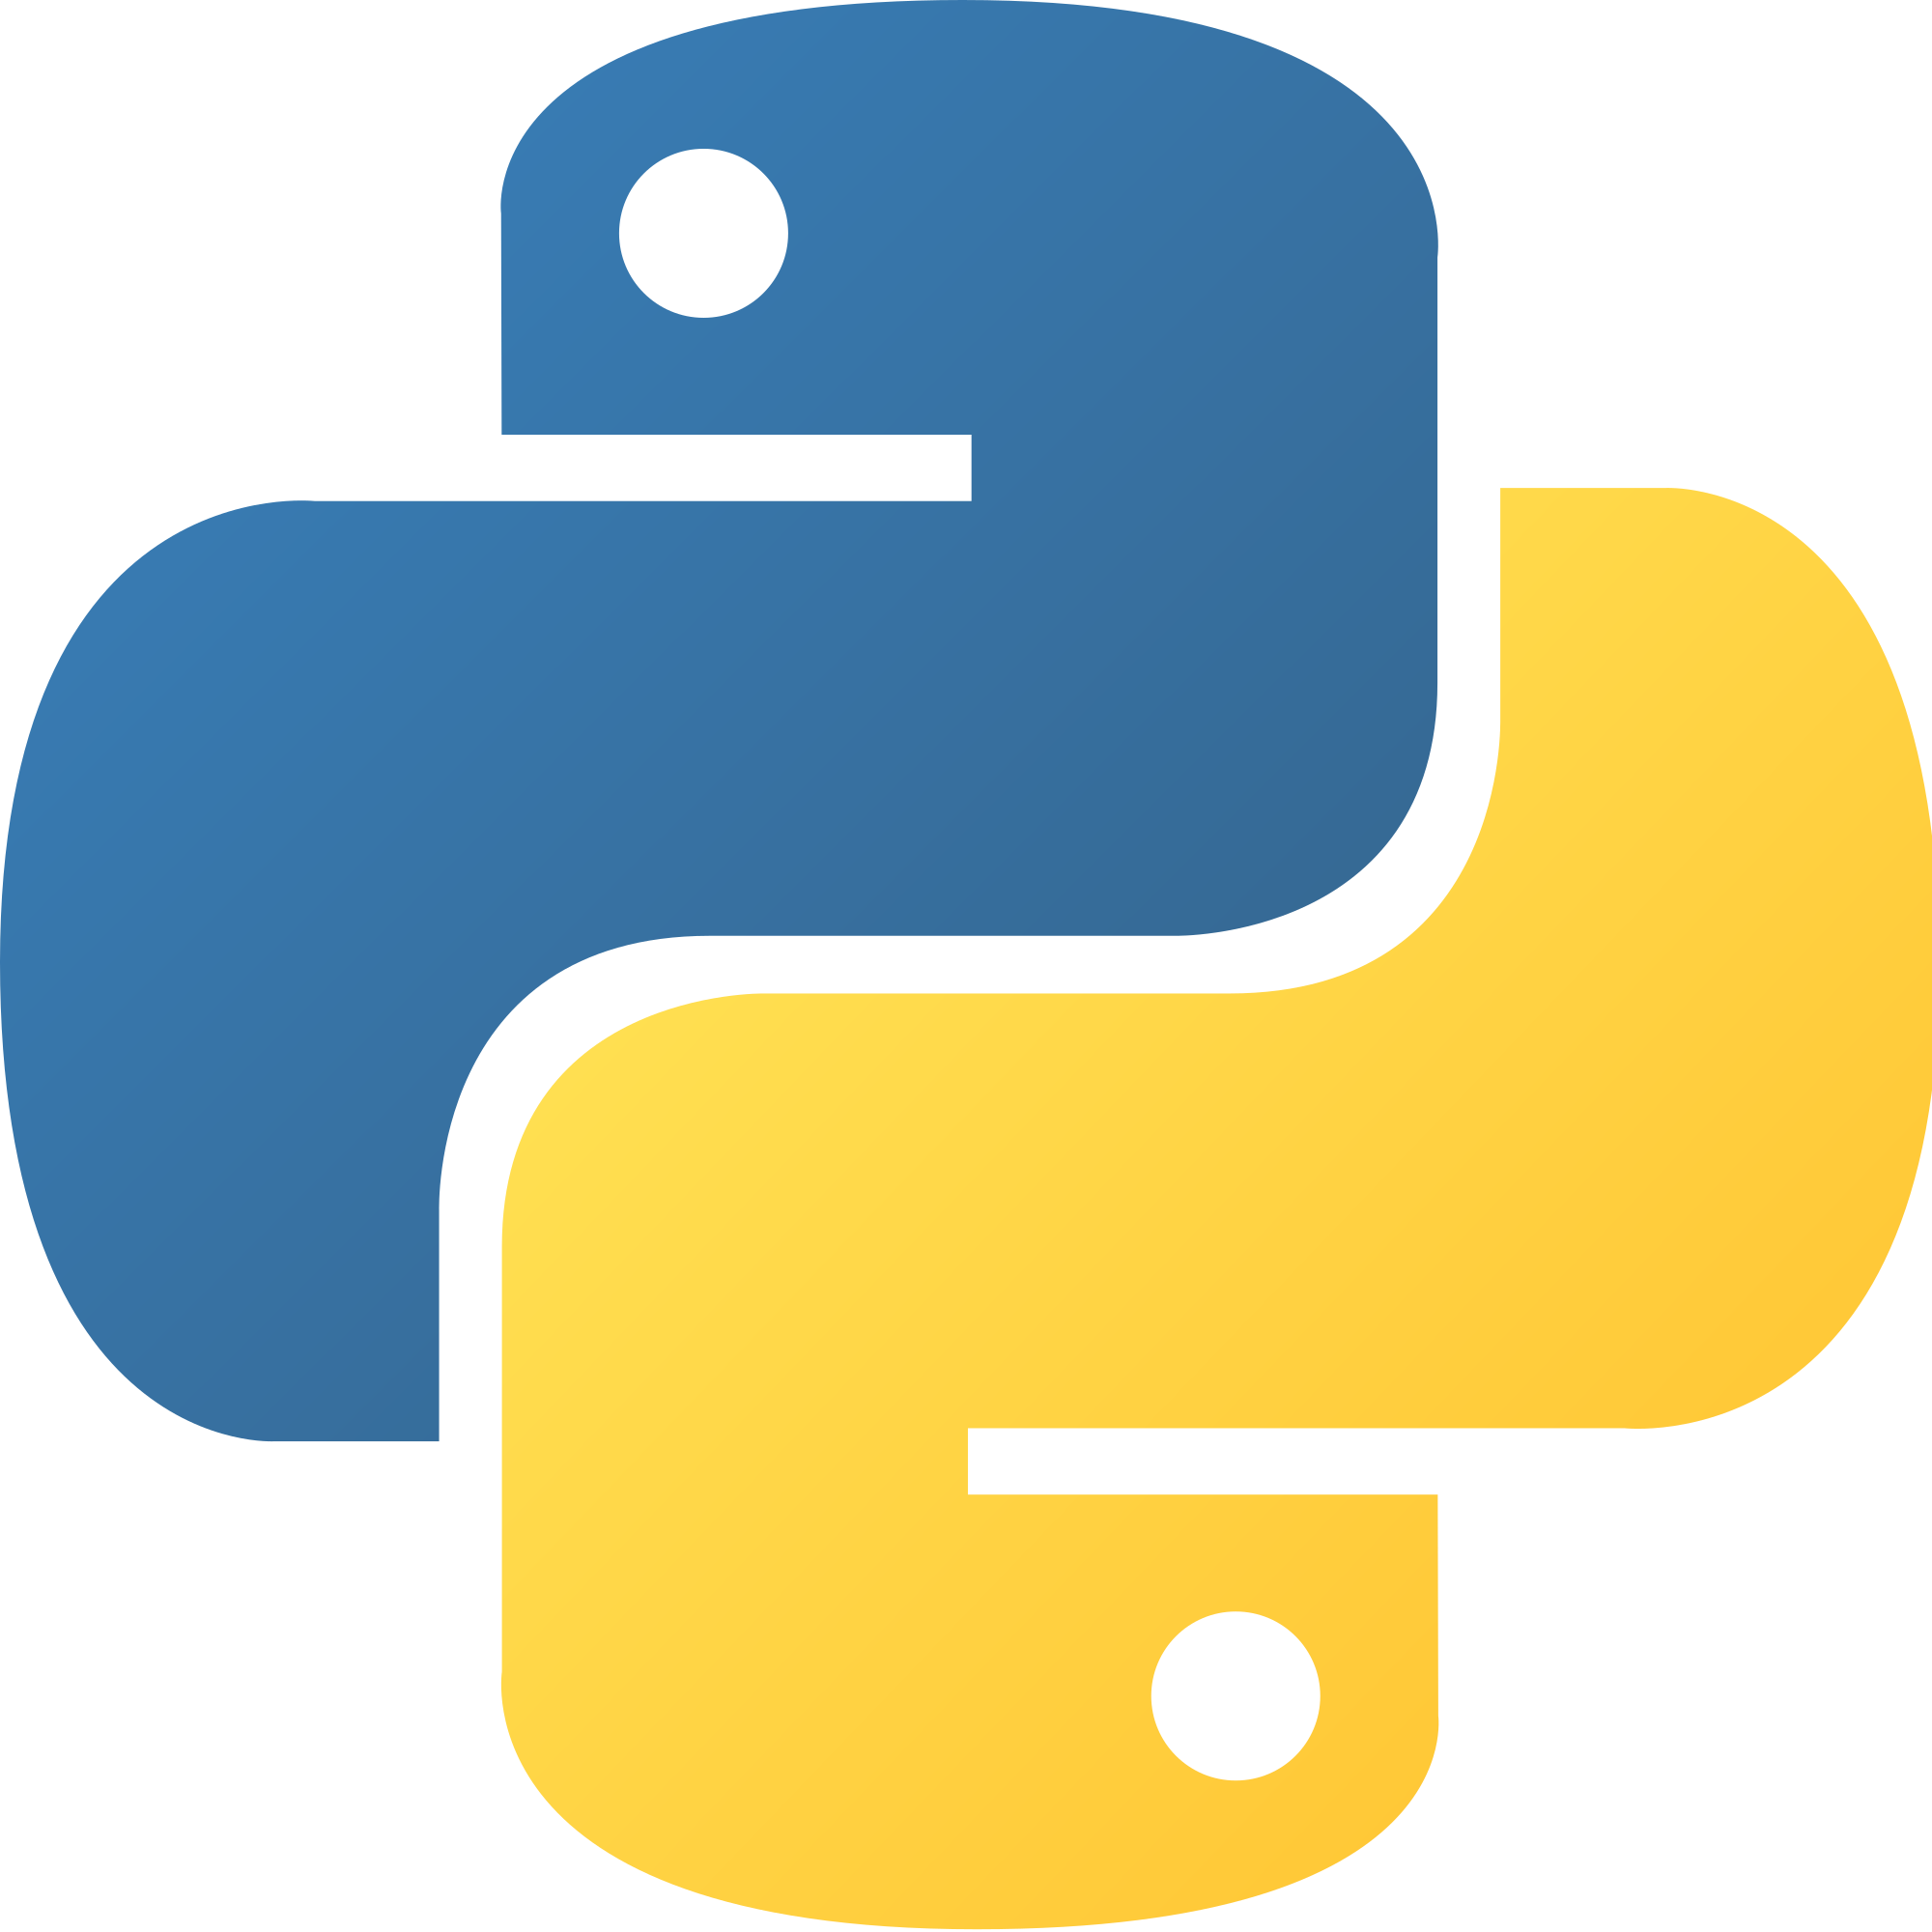 Python 3 Foundations Certification